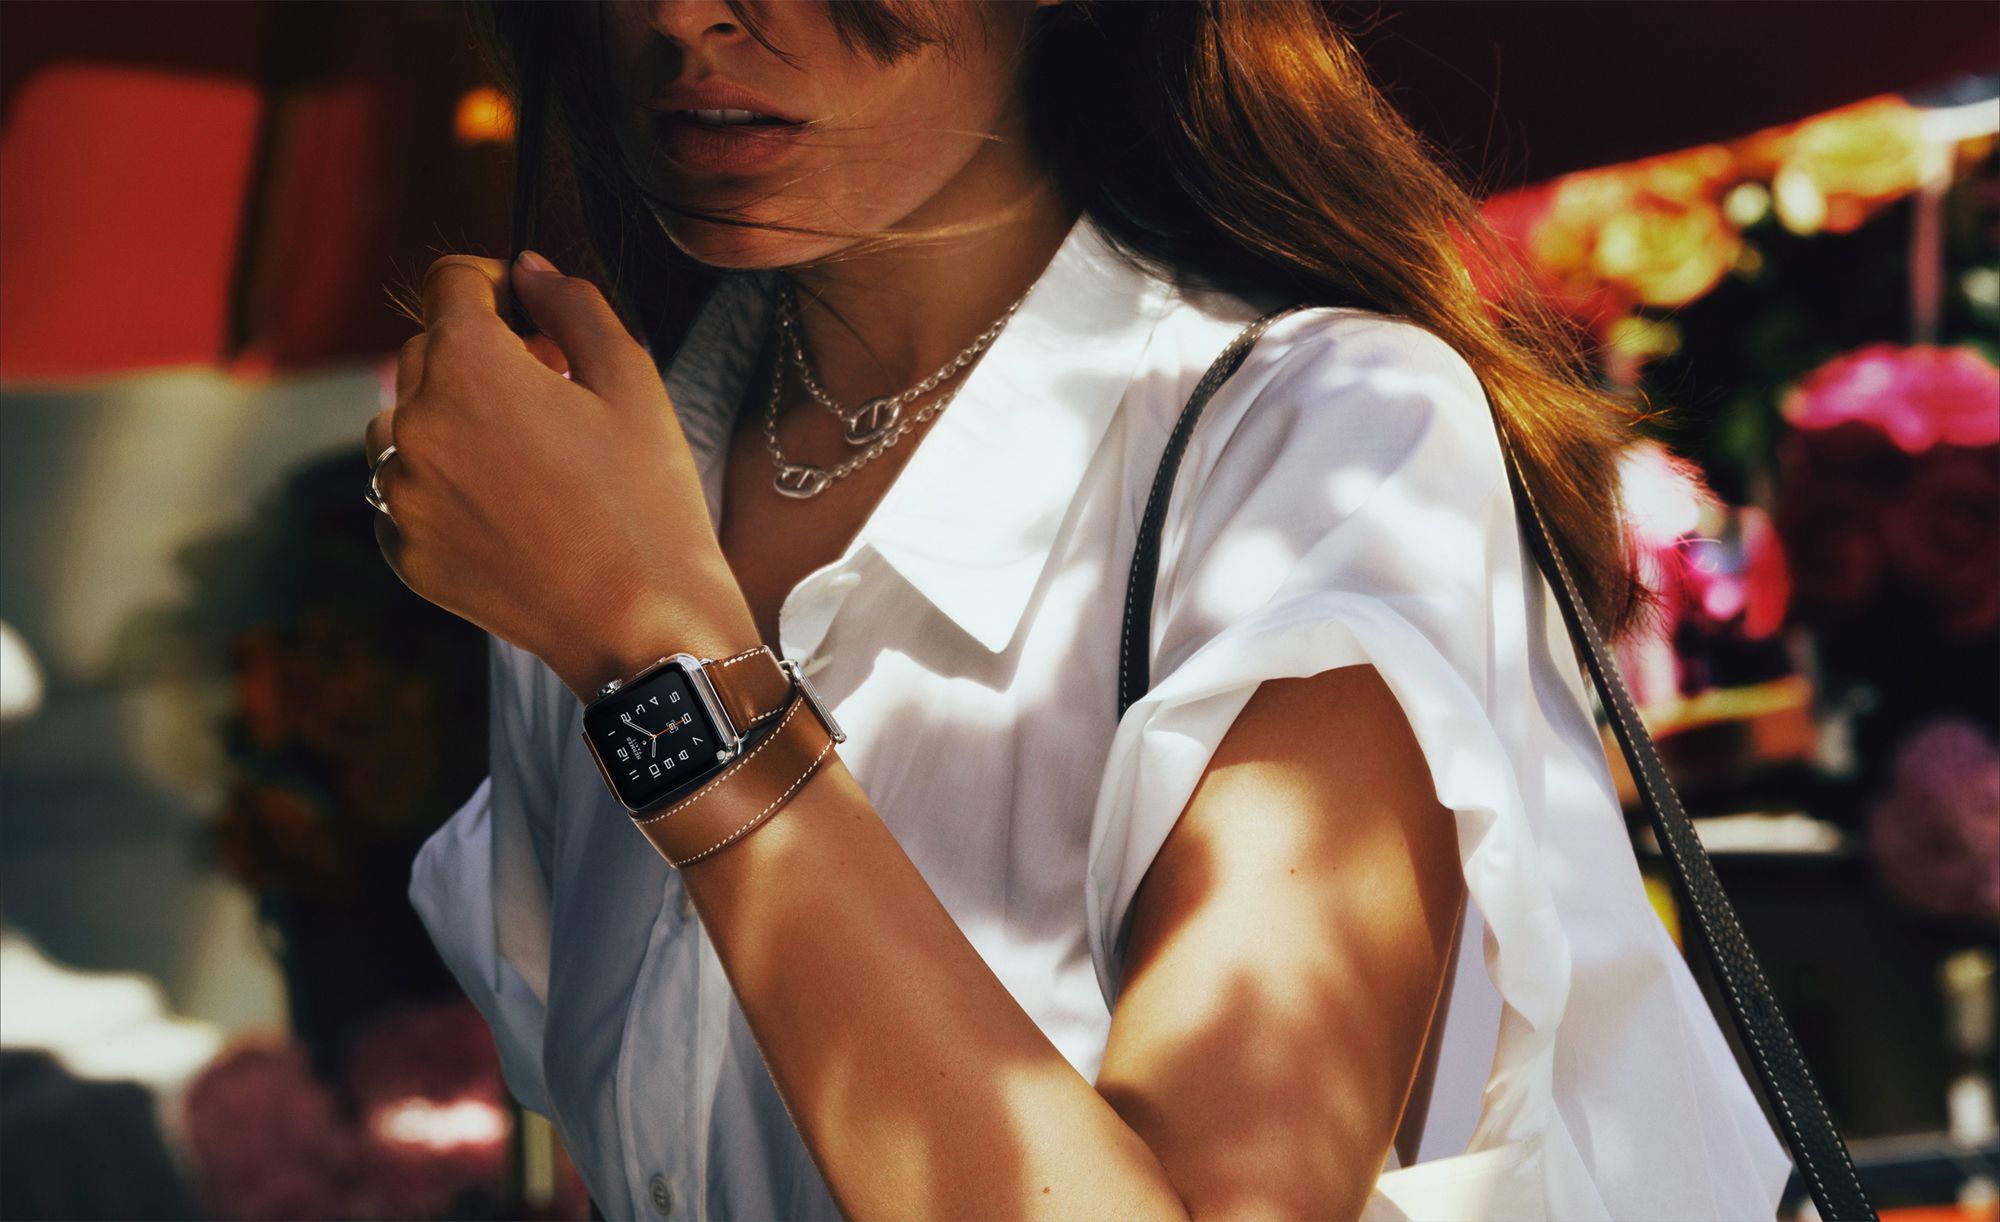 Apple Watch Hermès online